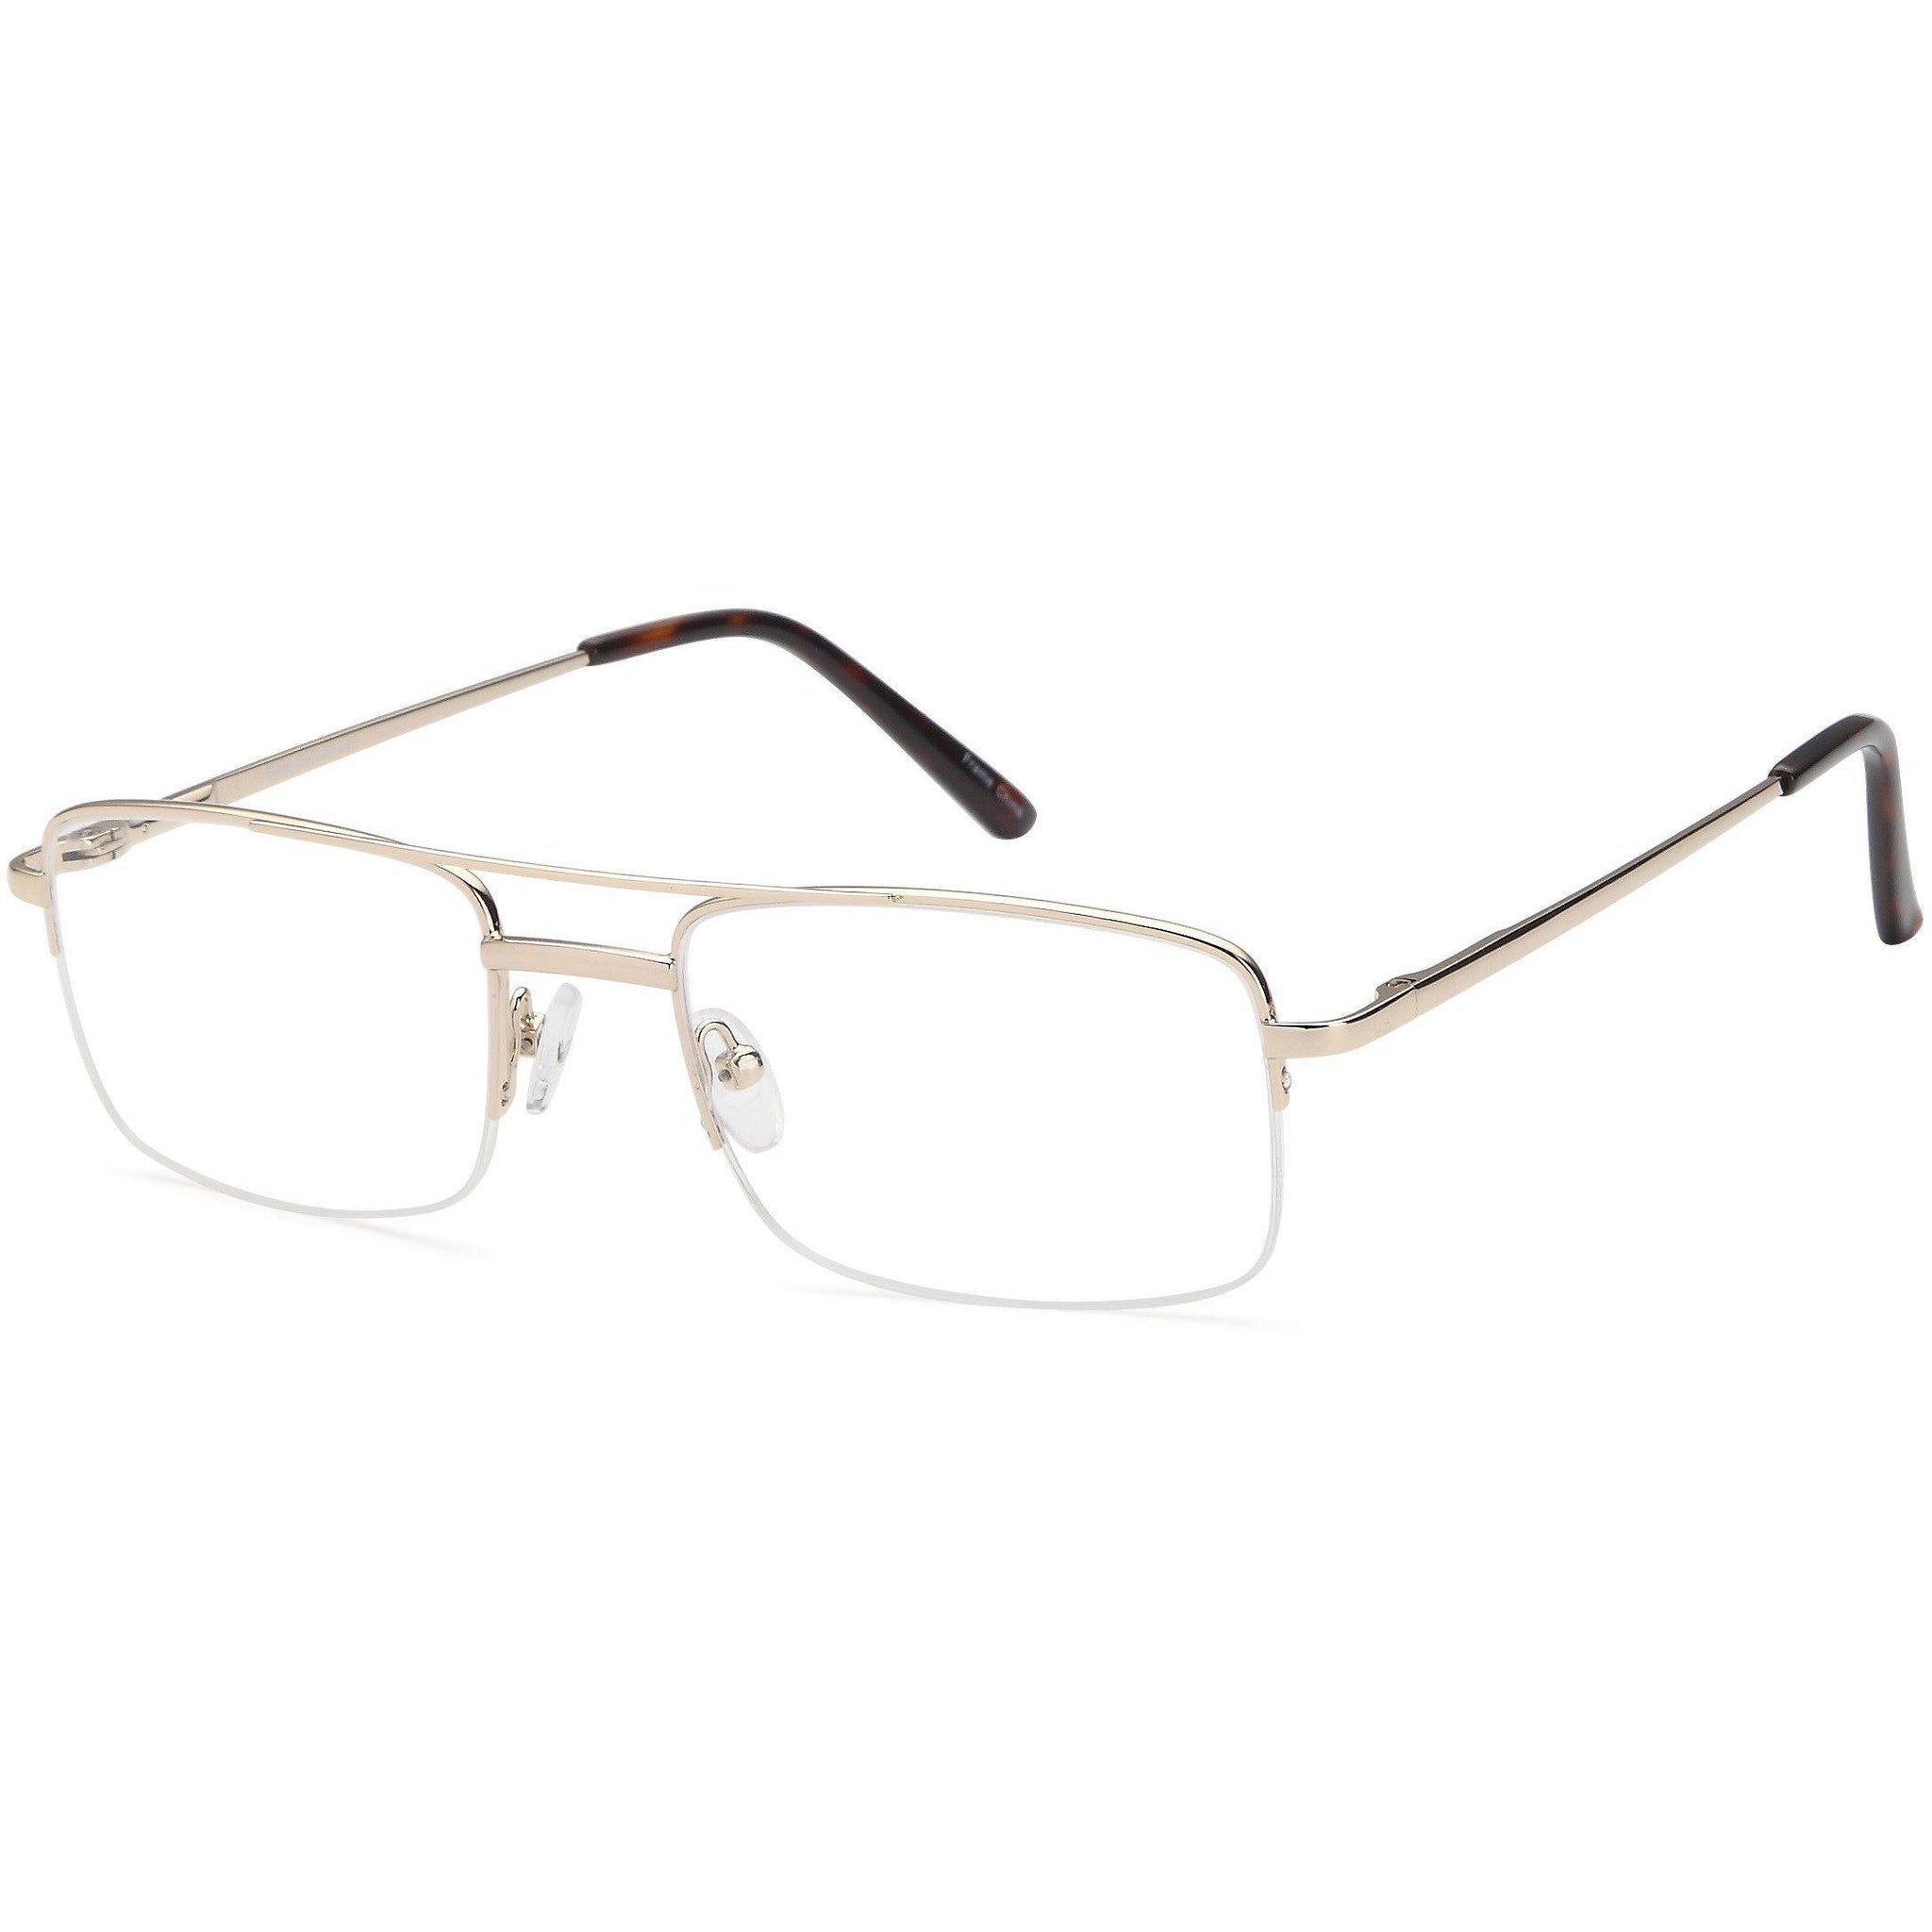 Classics Prescription Glasses VP 134 Frames